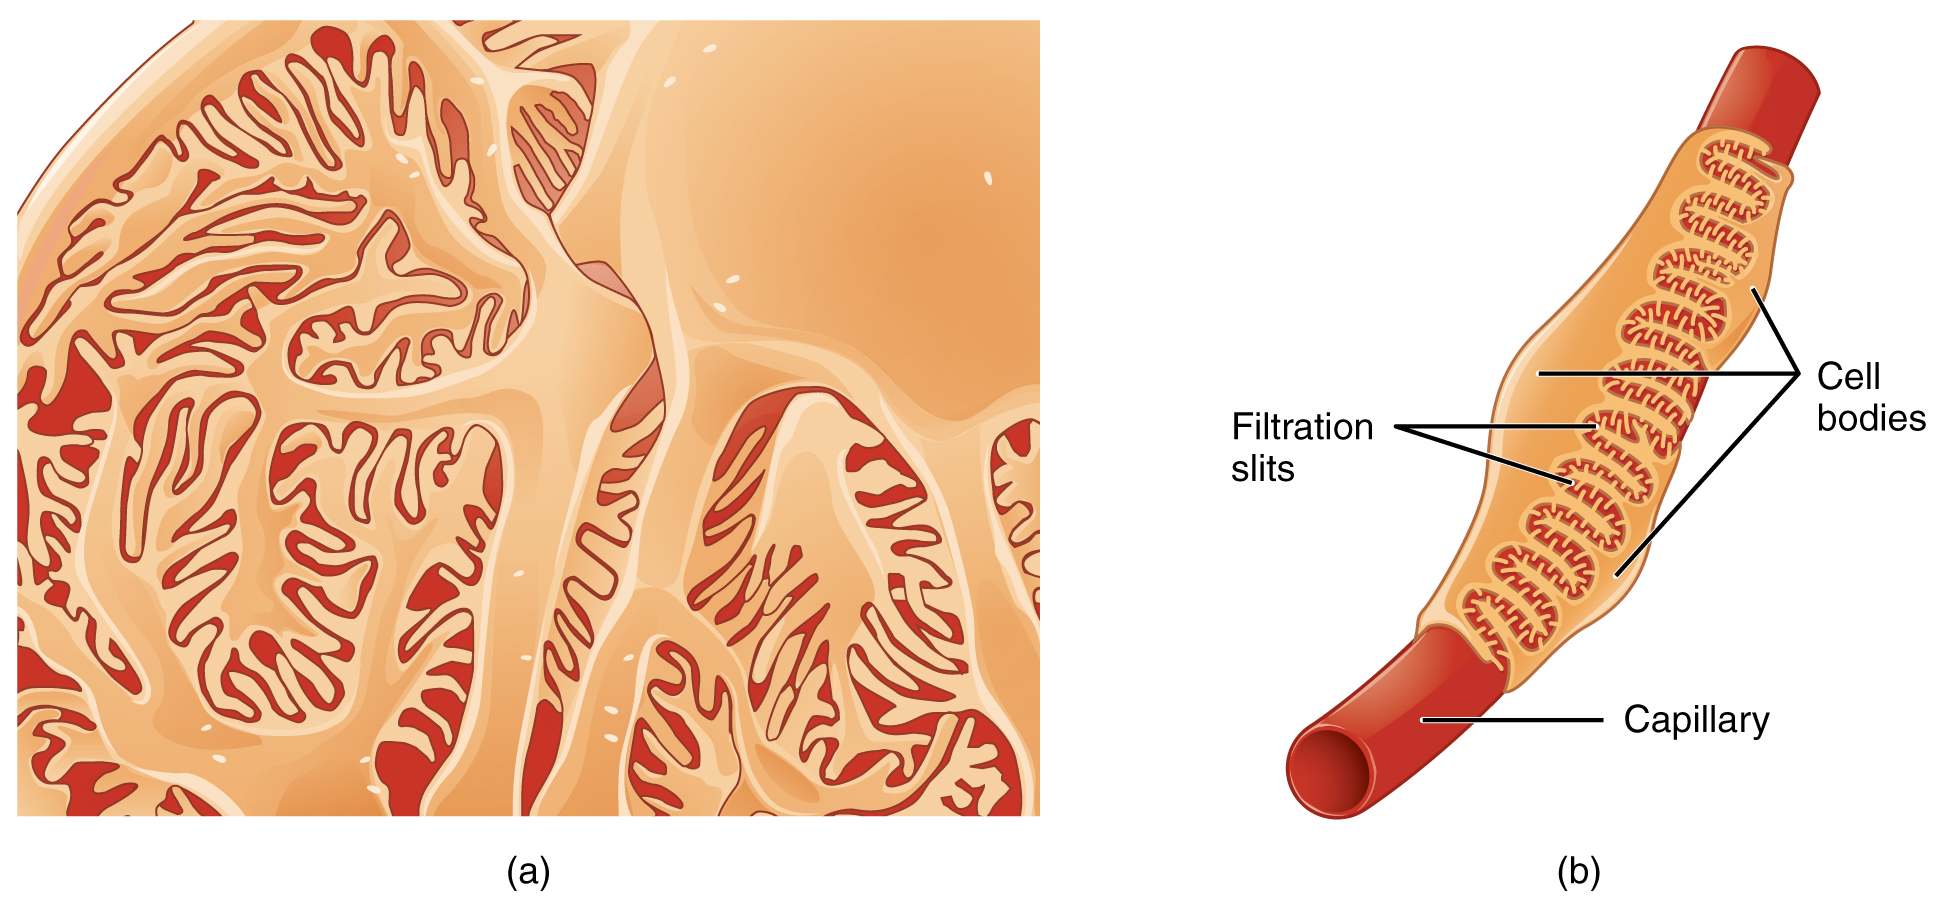 The left panel of this figure shows an image of a podocyte. The right panel shows a tube-like structure that illustrates the filtration slits and the cell bodies.